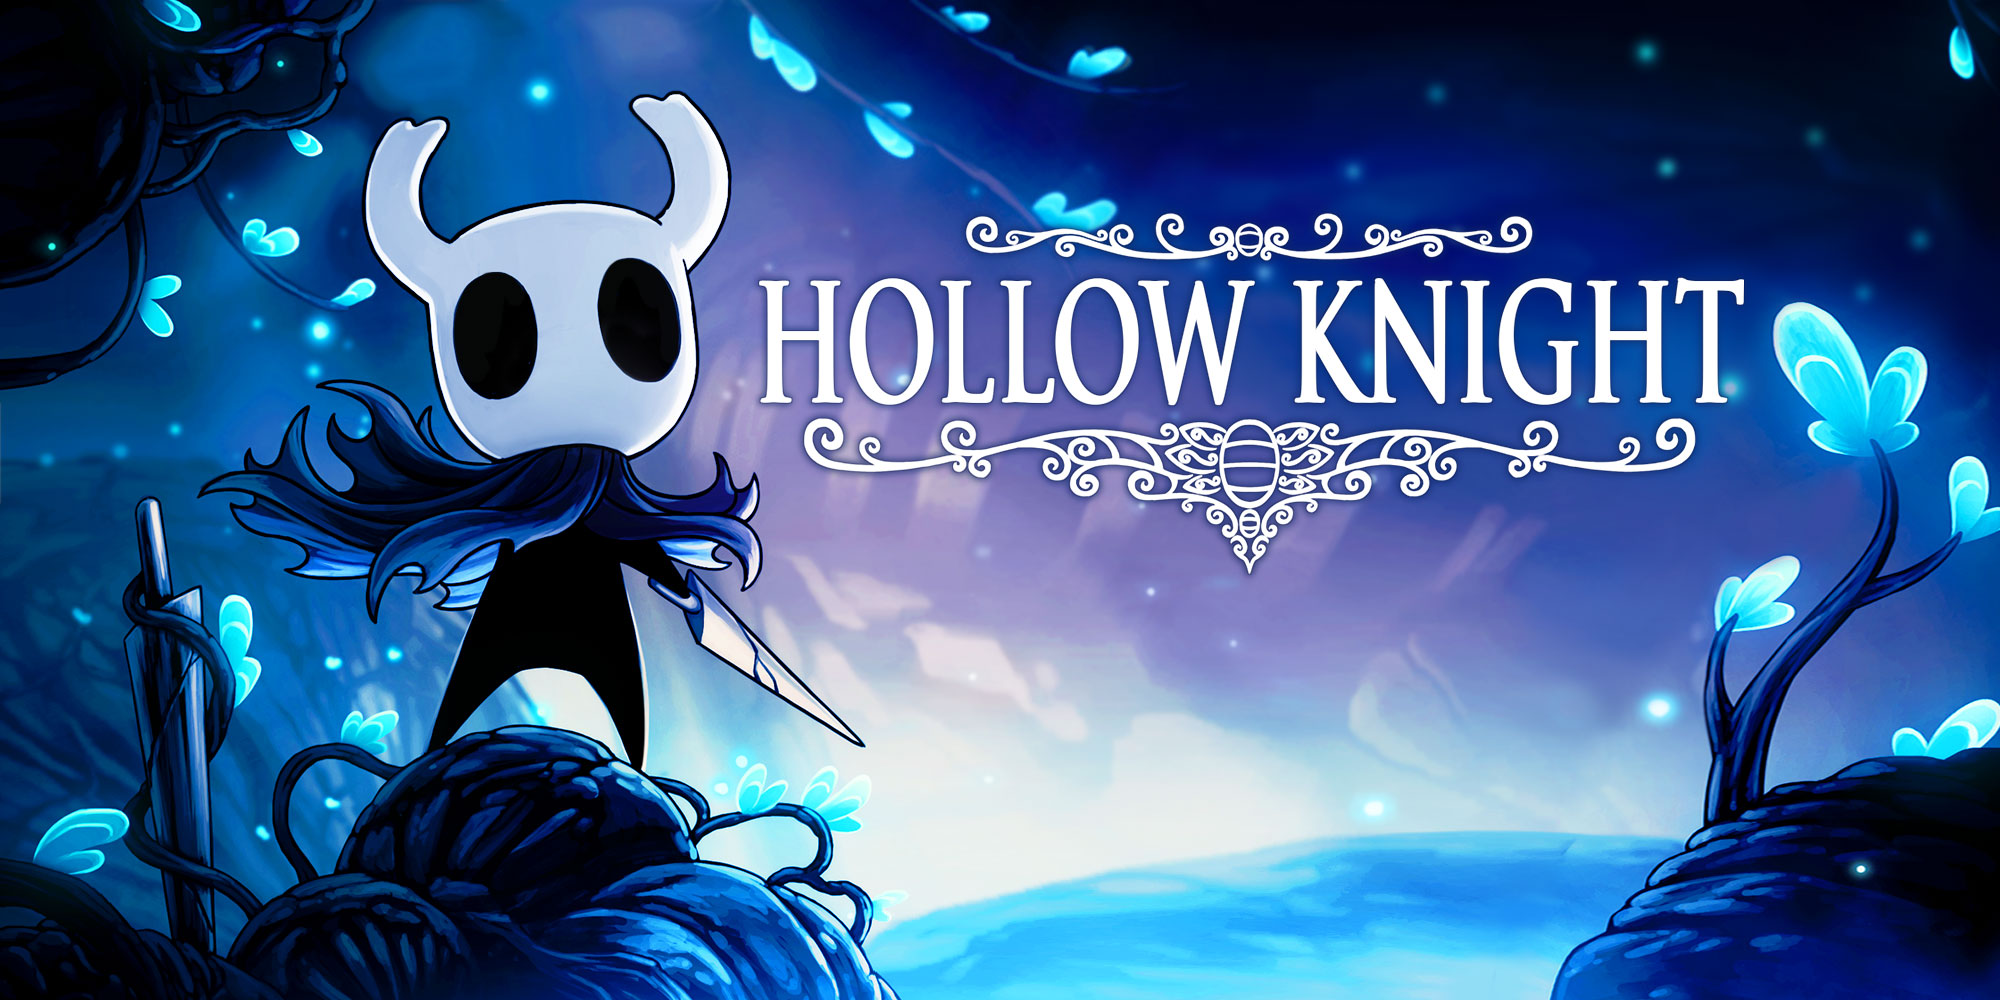 H2x1_WiiUDS_HollowKnight.jpg